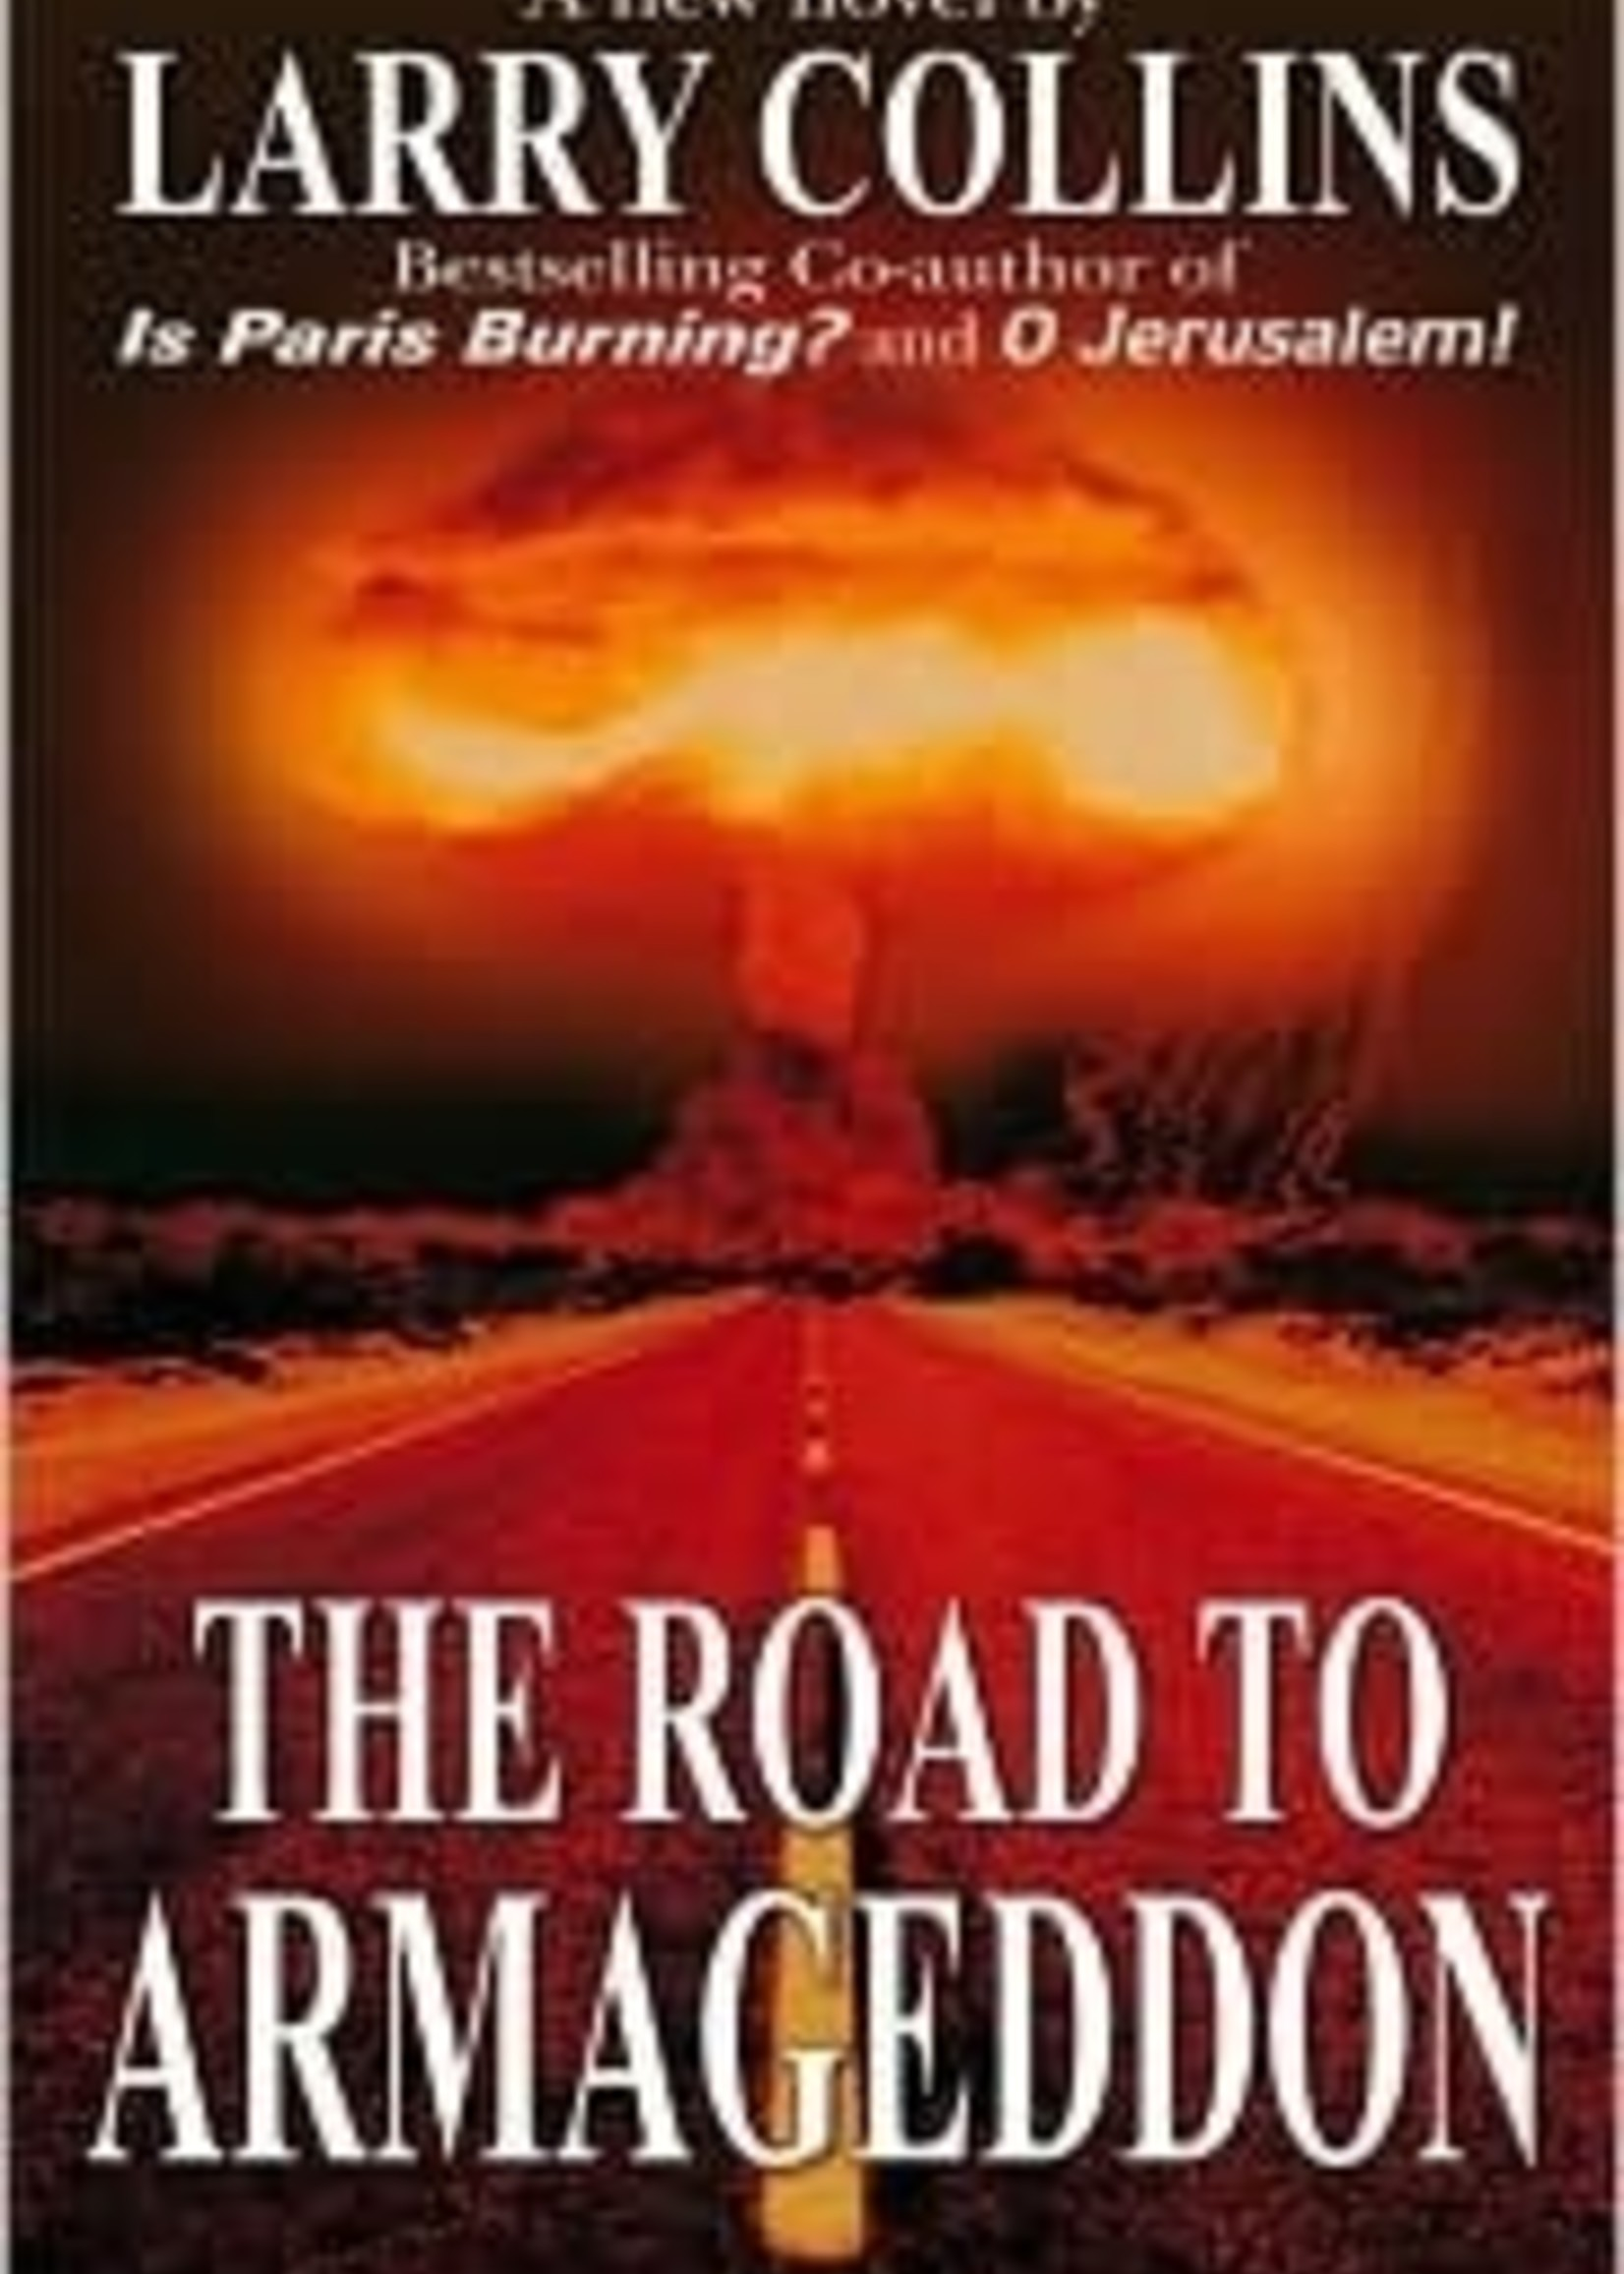 USED - The Road to Armageddon by Larry Collins